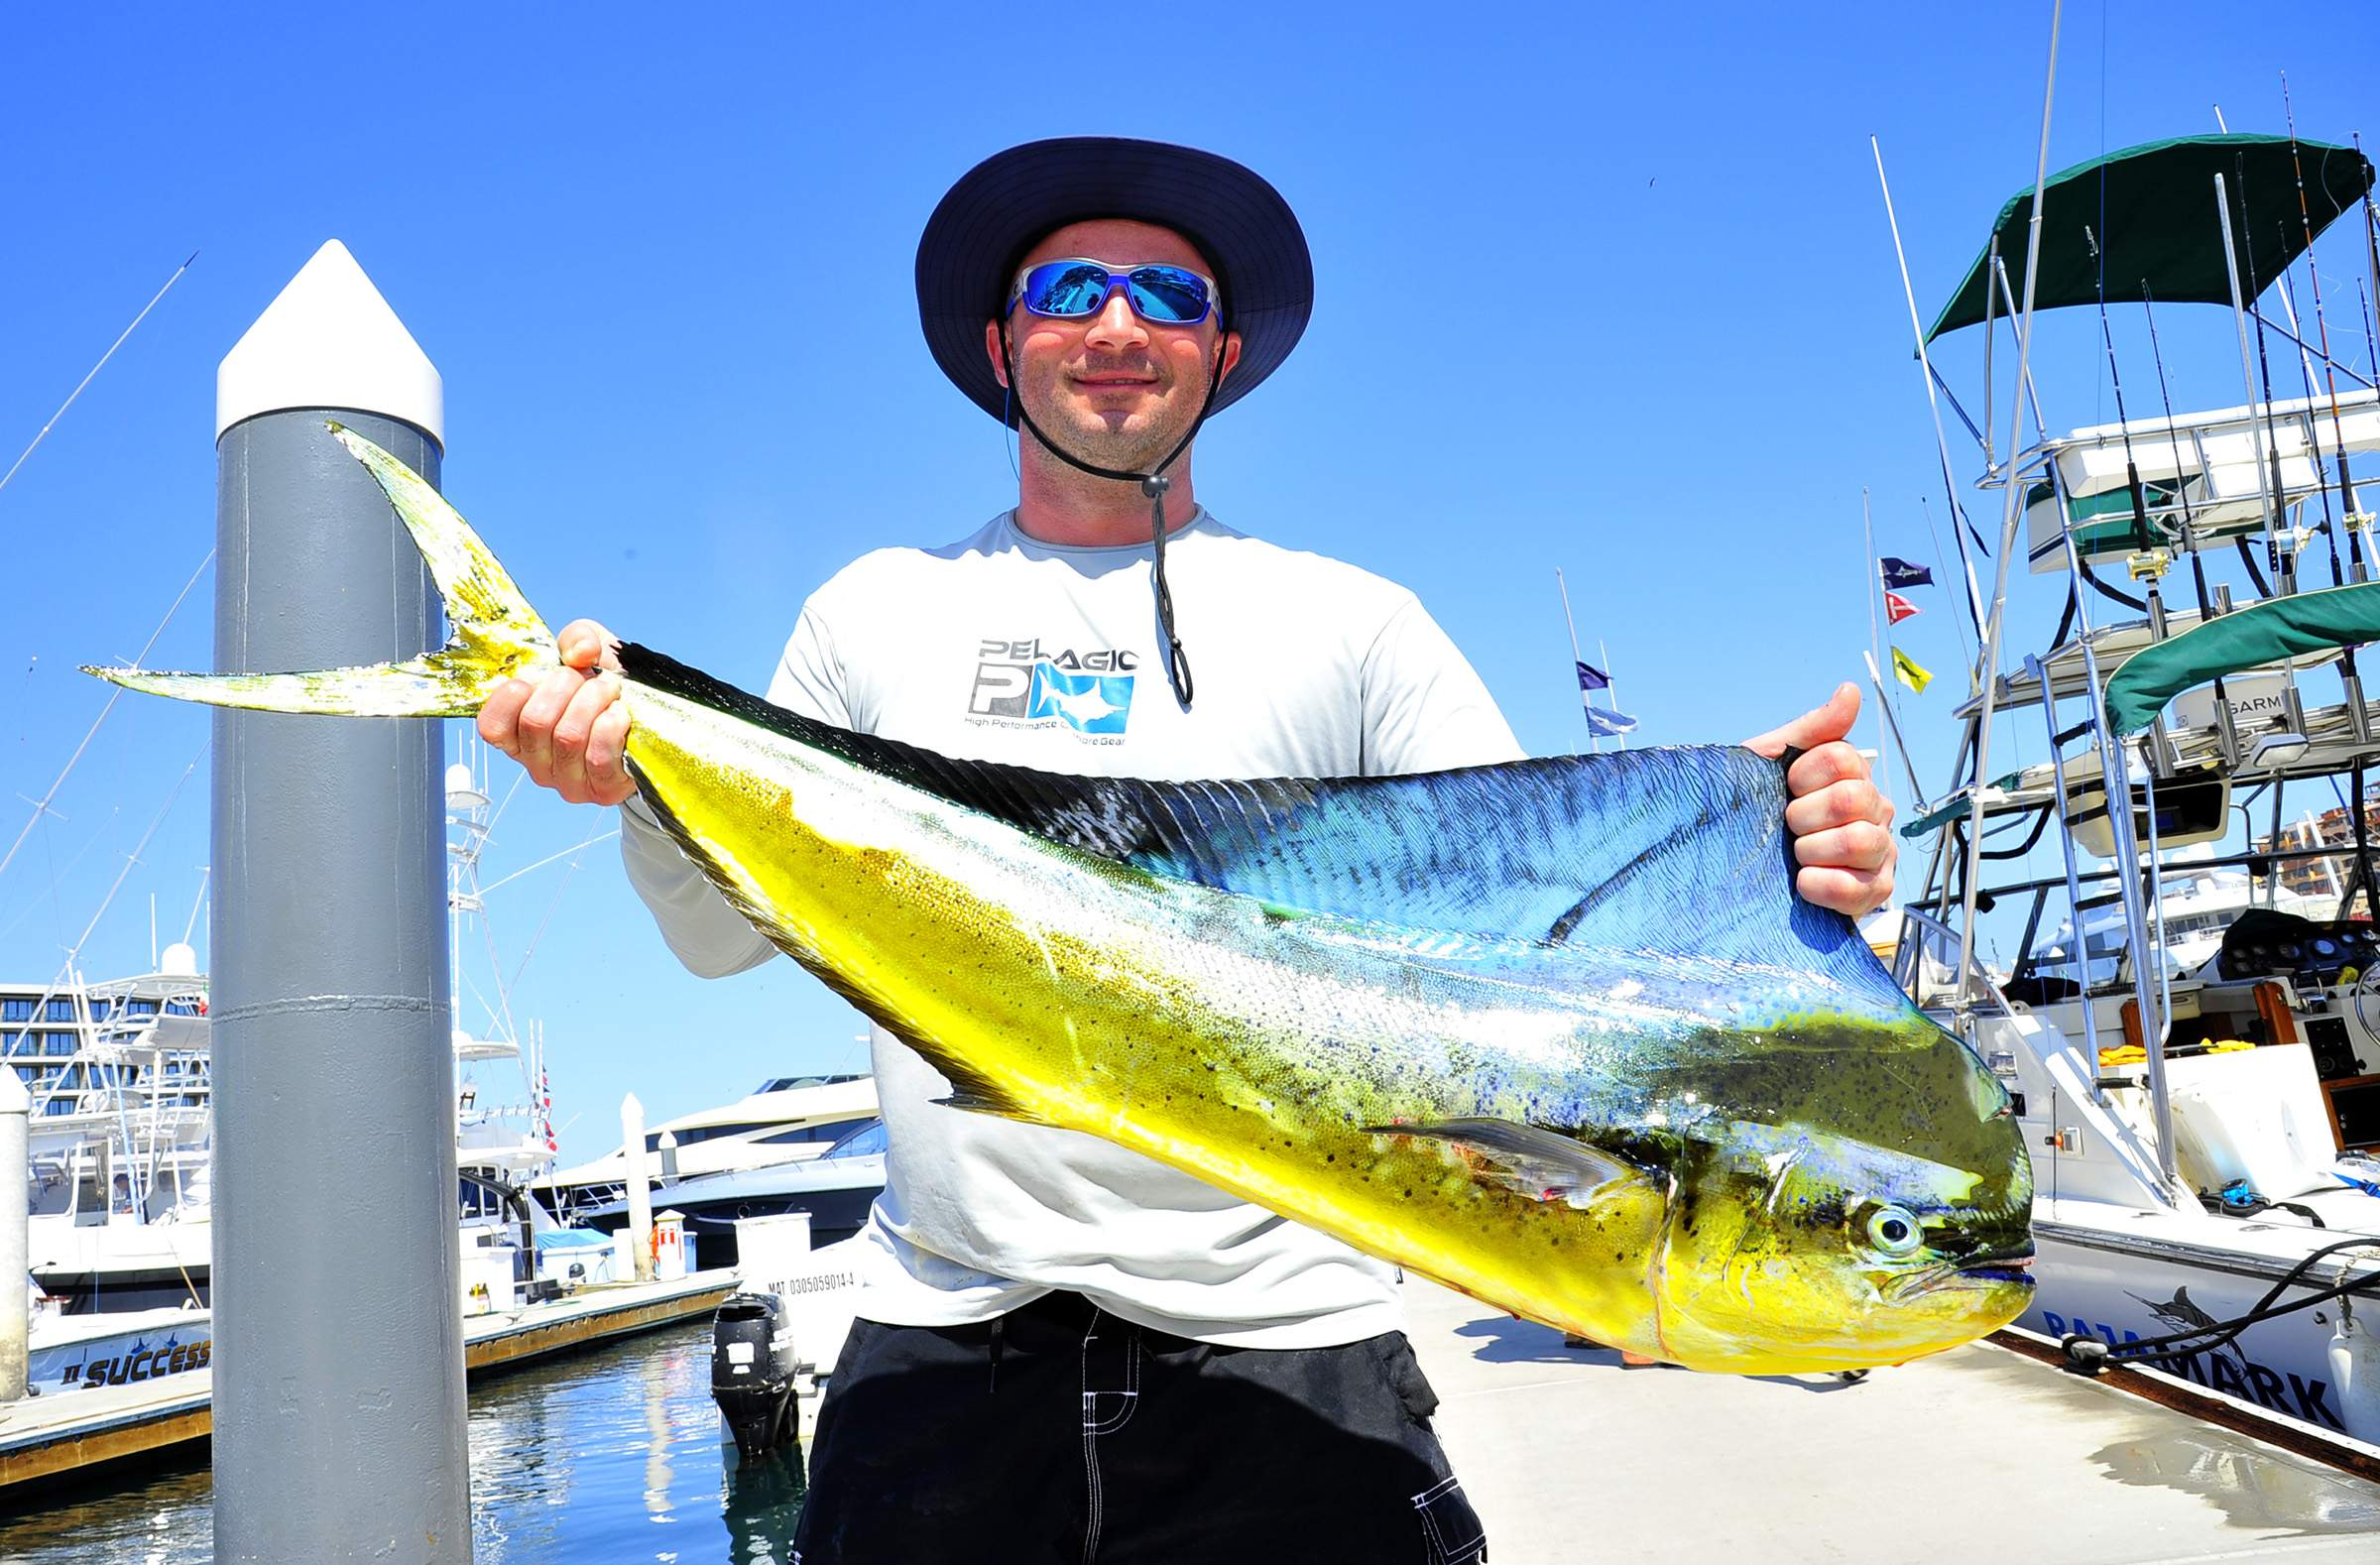 Pelagic Cabo Summer Slam Triple Crown 33